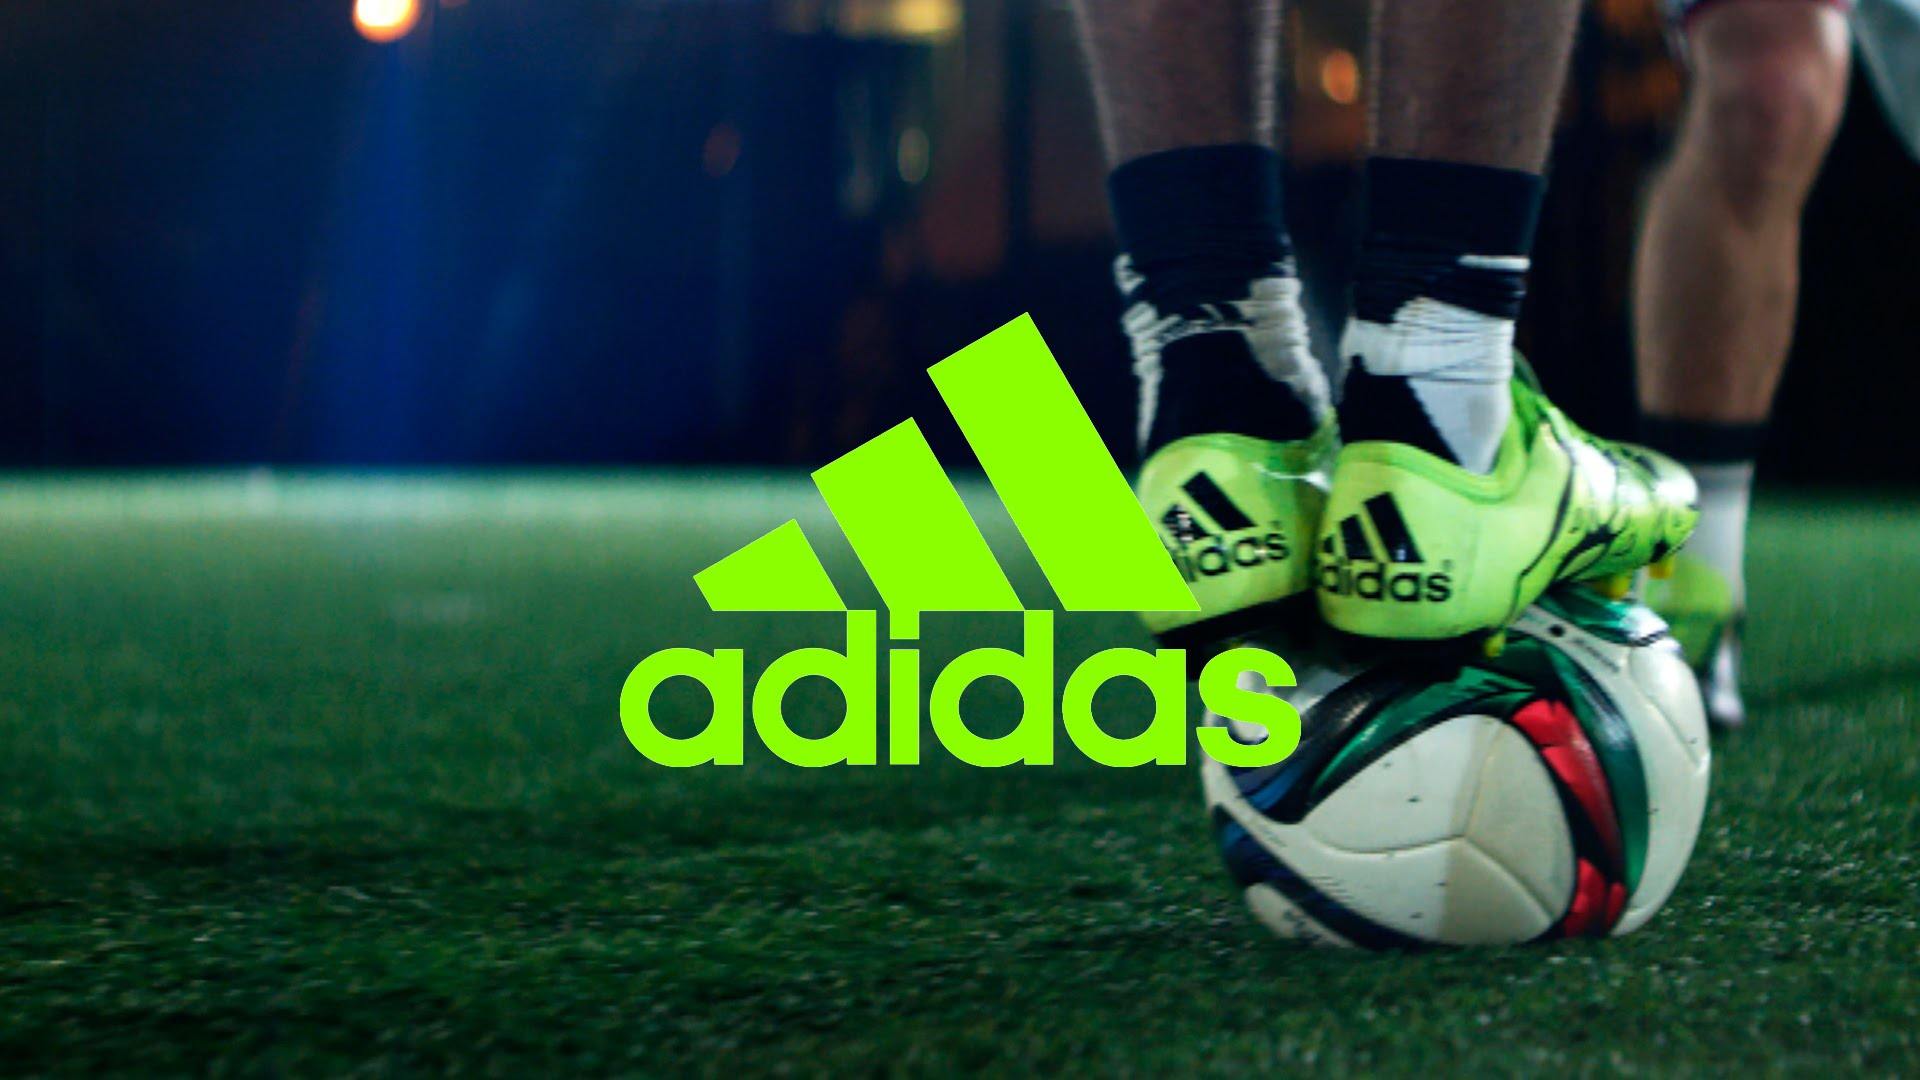 adidas 2016 commercial